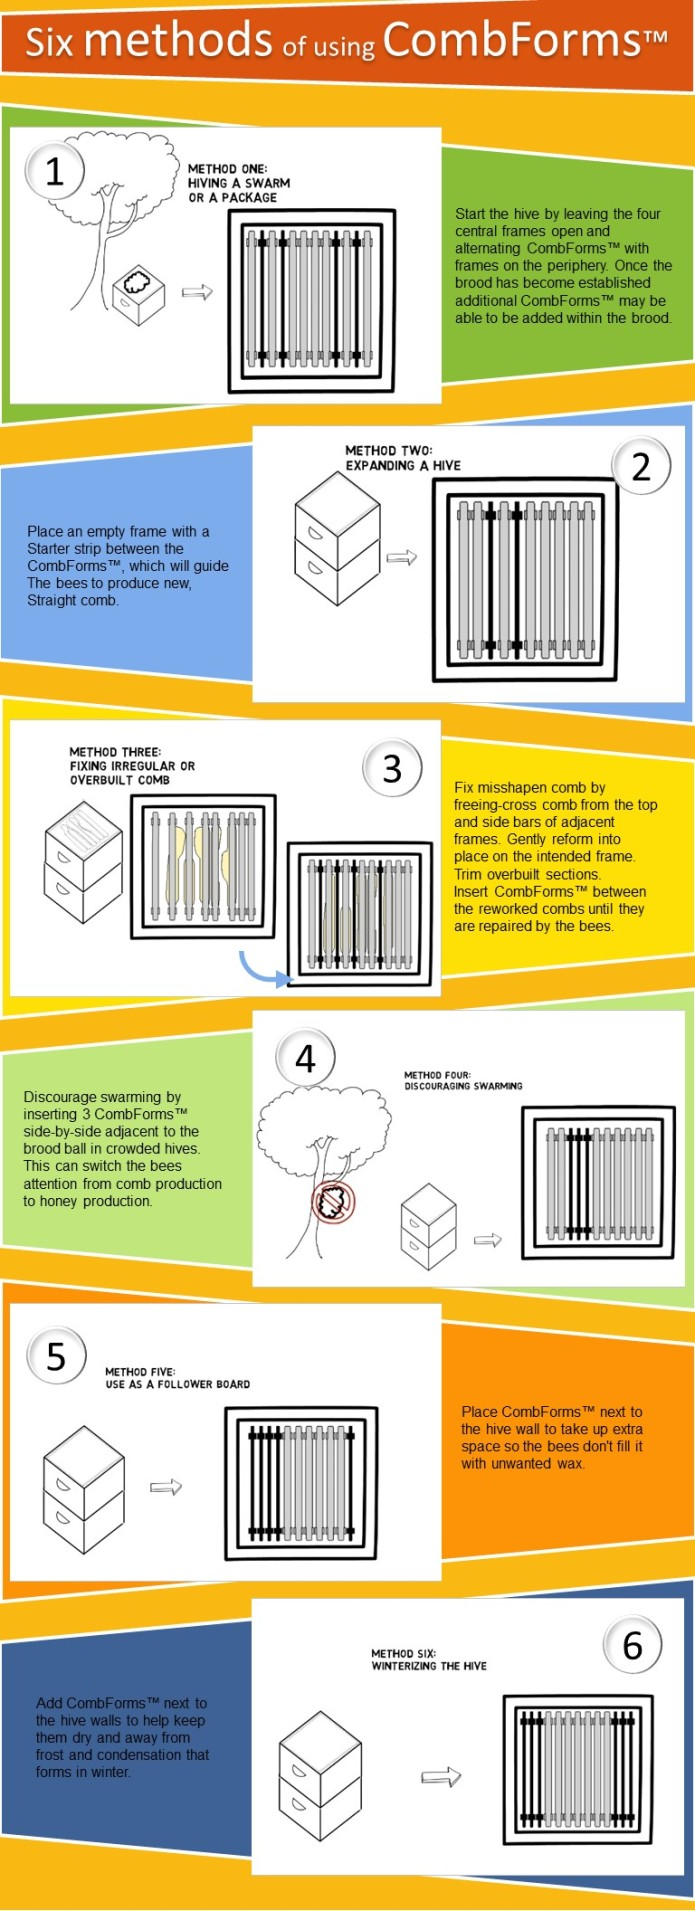 Combforms For Honey Bees Indiegogo Beehive Phone Wiring Diagram Six Possible Methods Of Using